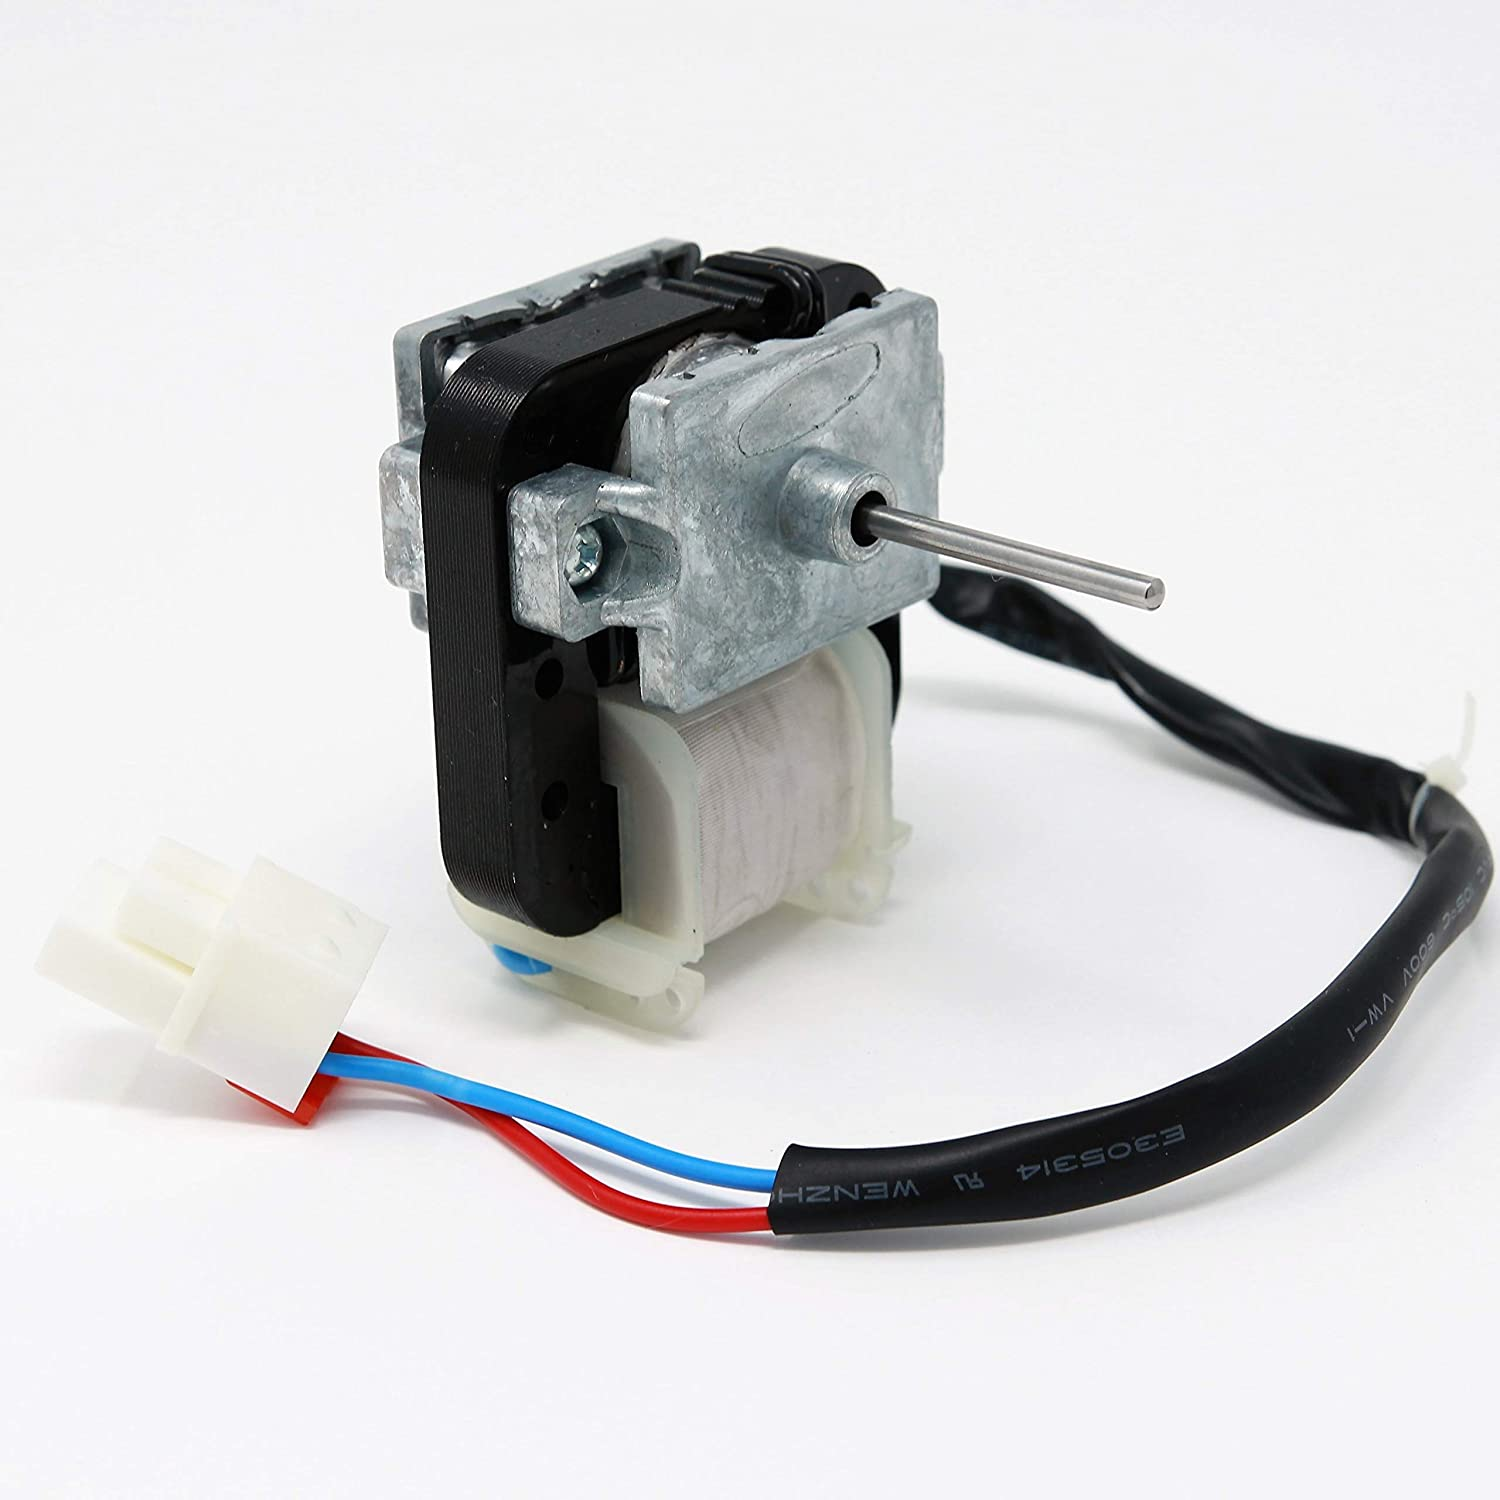 Raven Condenser Fan Motor for Samsung Maytag Refrigerator Replaces DA31-00103A AP4140906 IS-27210SCD6A